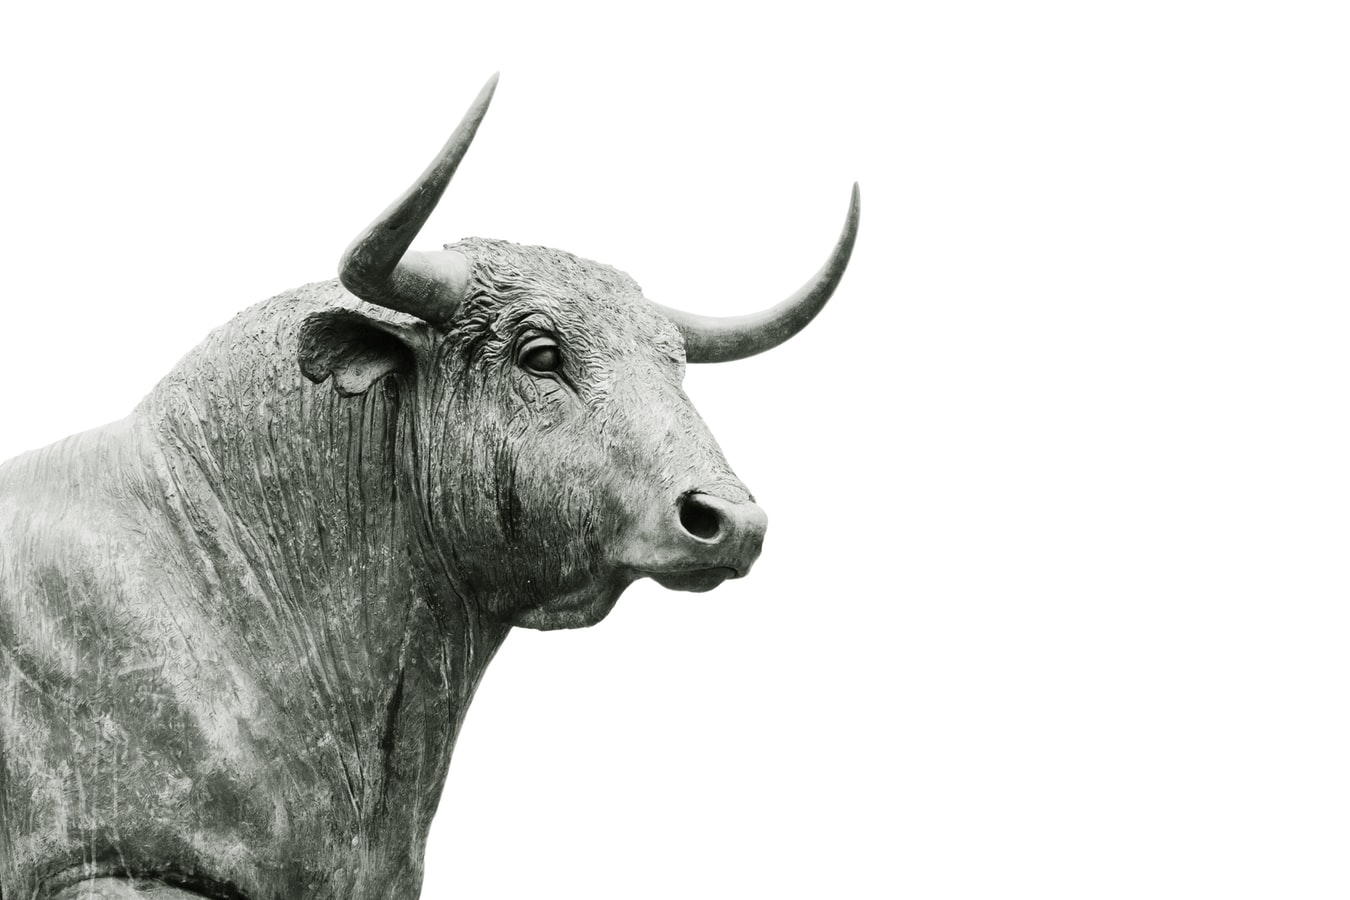 Stock market bull, bull statue, black and white bullish traders